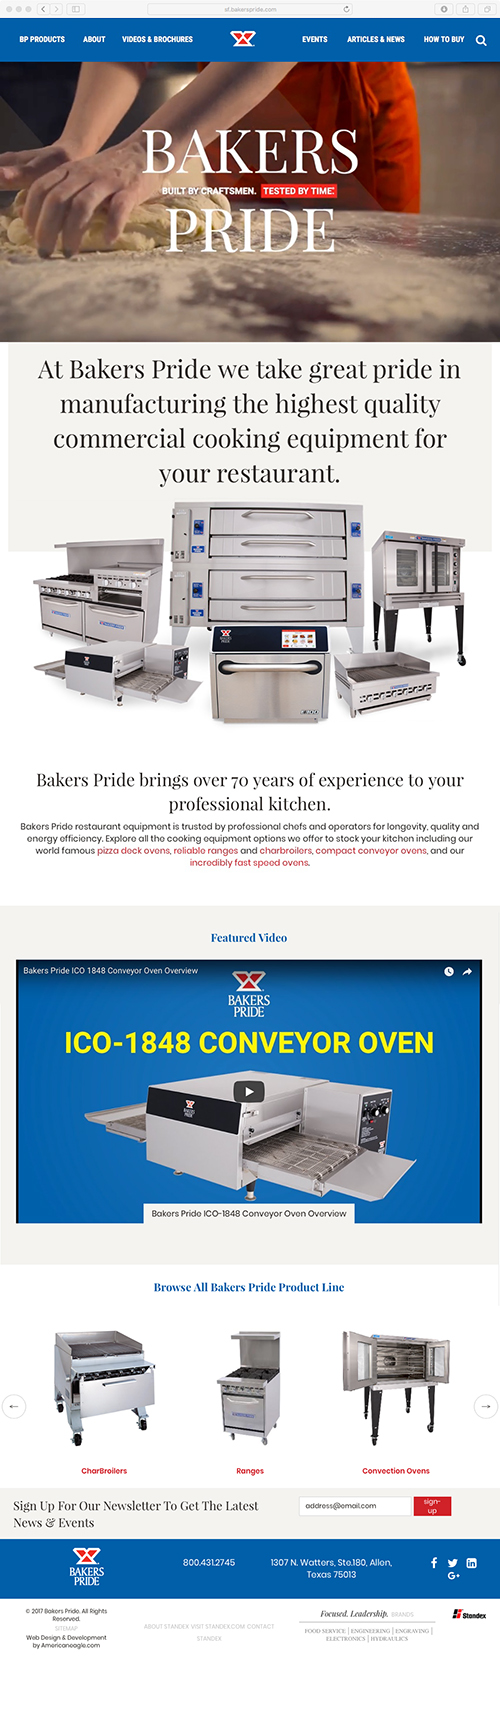 Bakers Pride Website